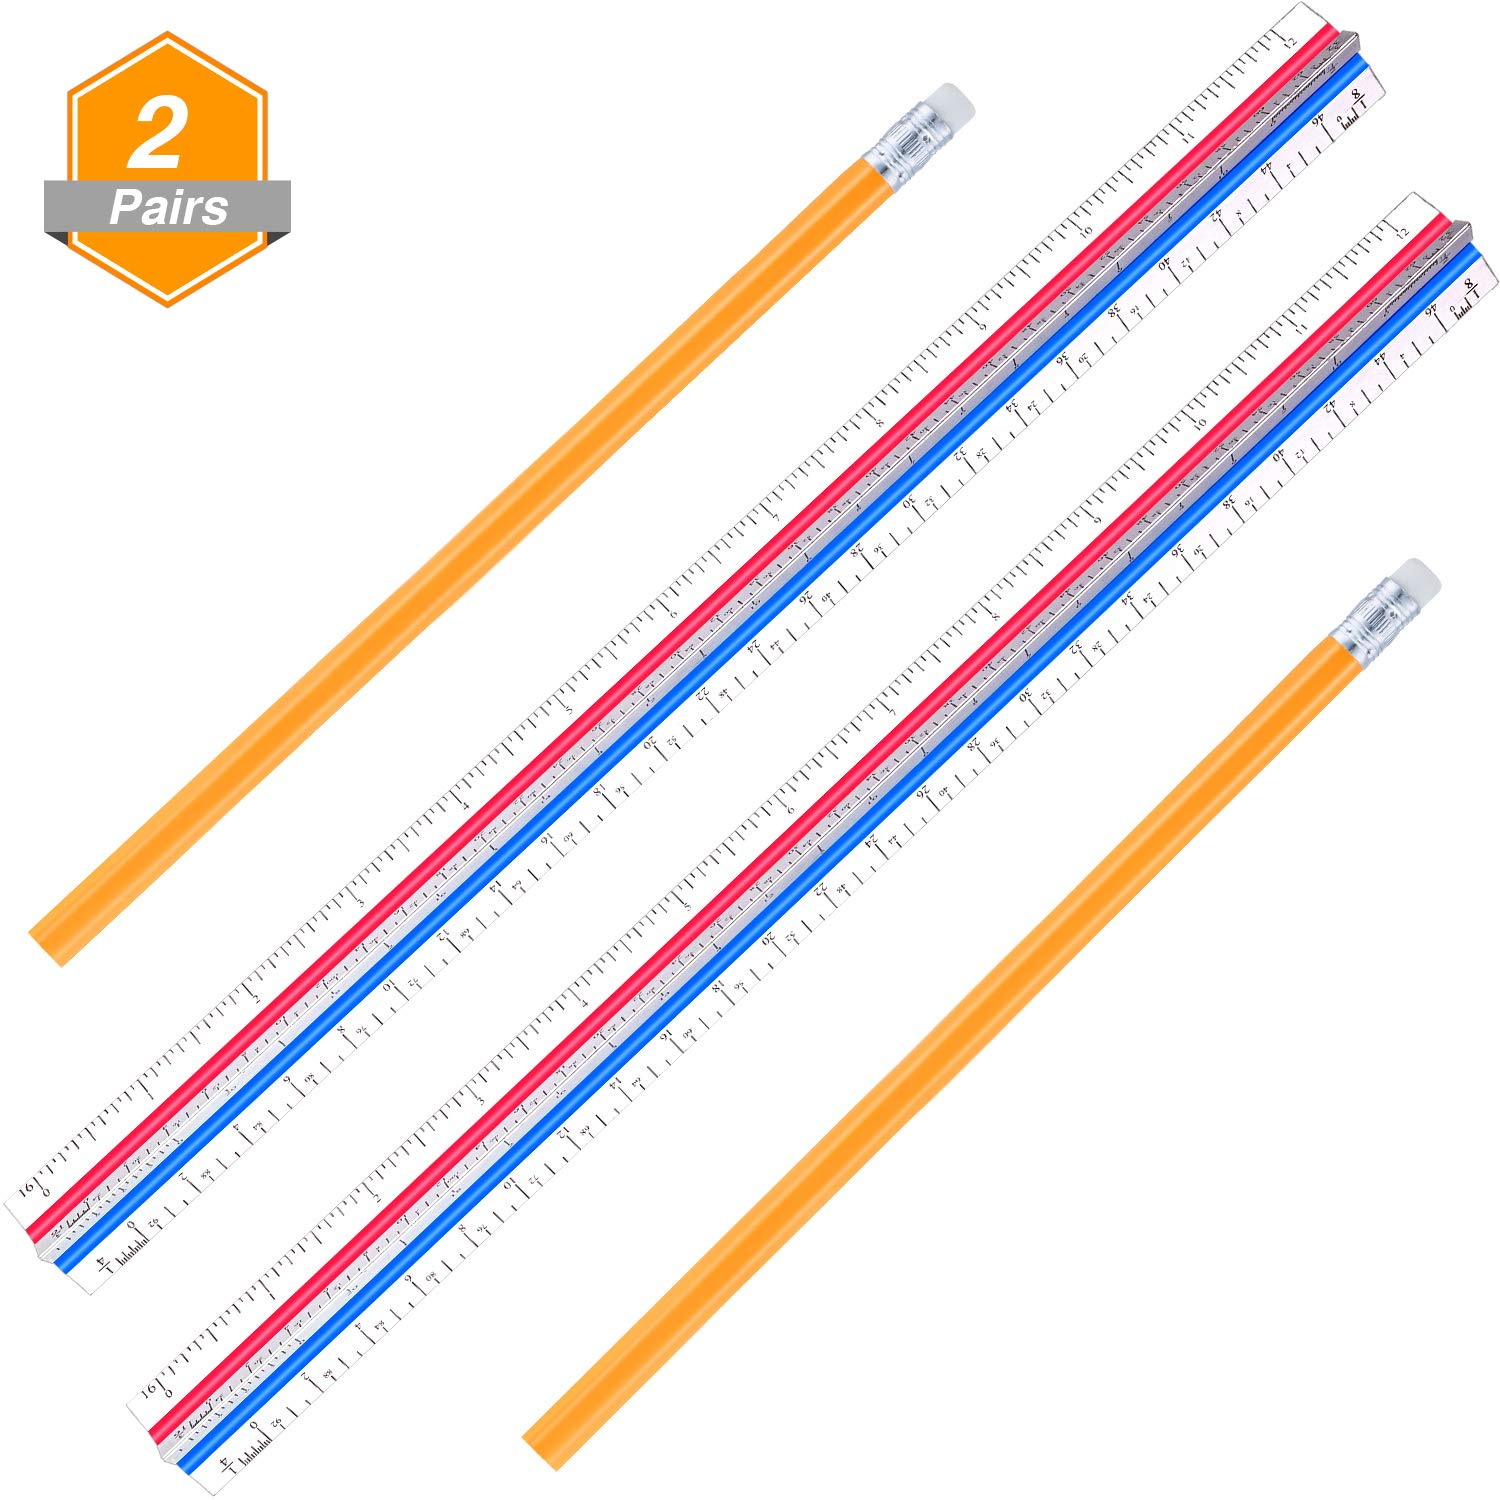 Gejoy 2 Pack 12.8 Inch Aluminum Triangular Architect Scale Ruler Color Coded Architectural Scale with 2 Pack Pencils for Architects, Engineers, Draftsman and Students